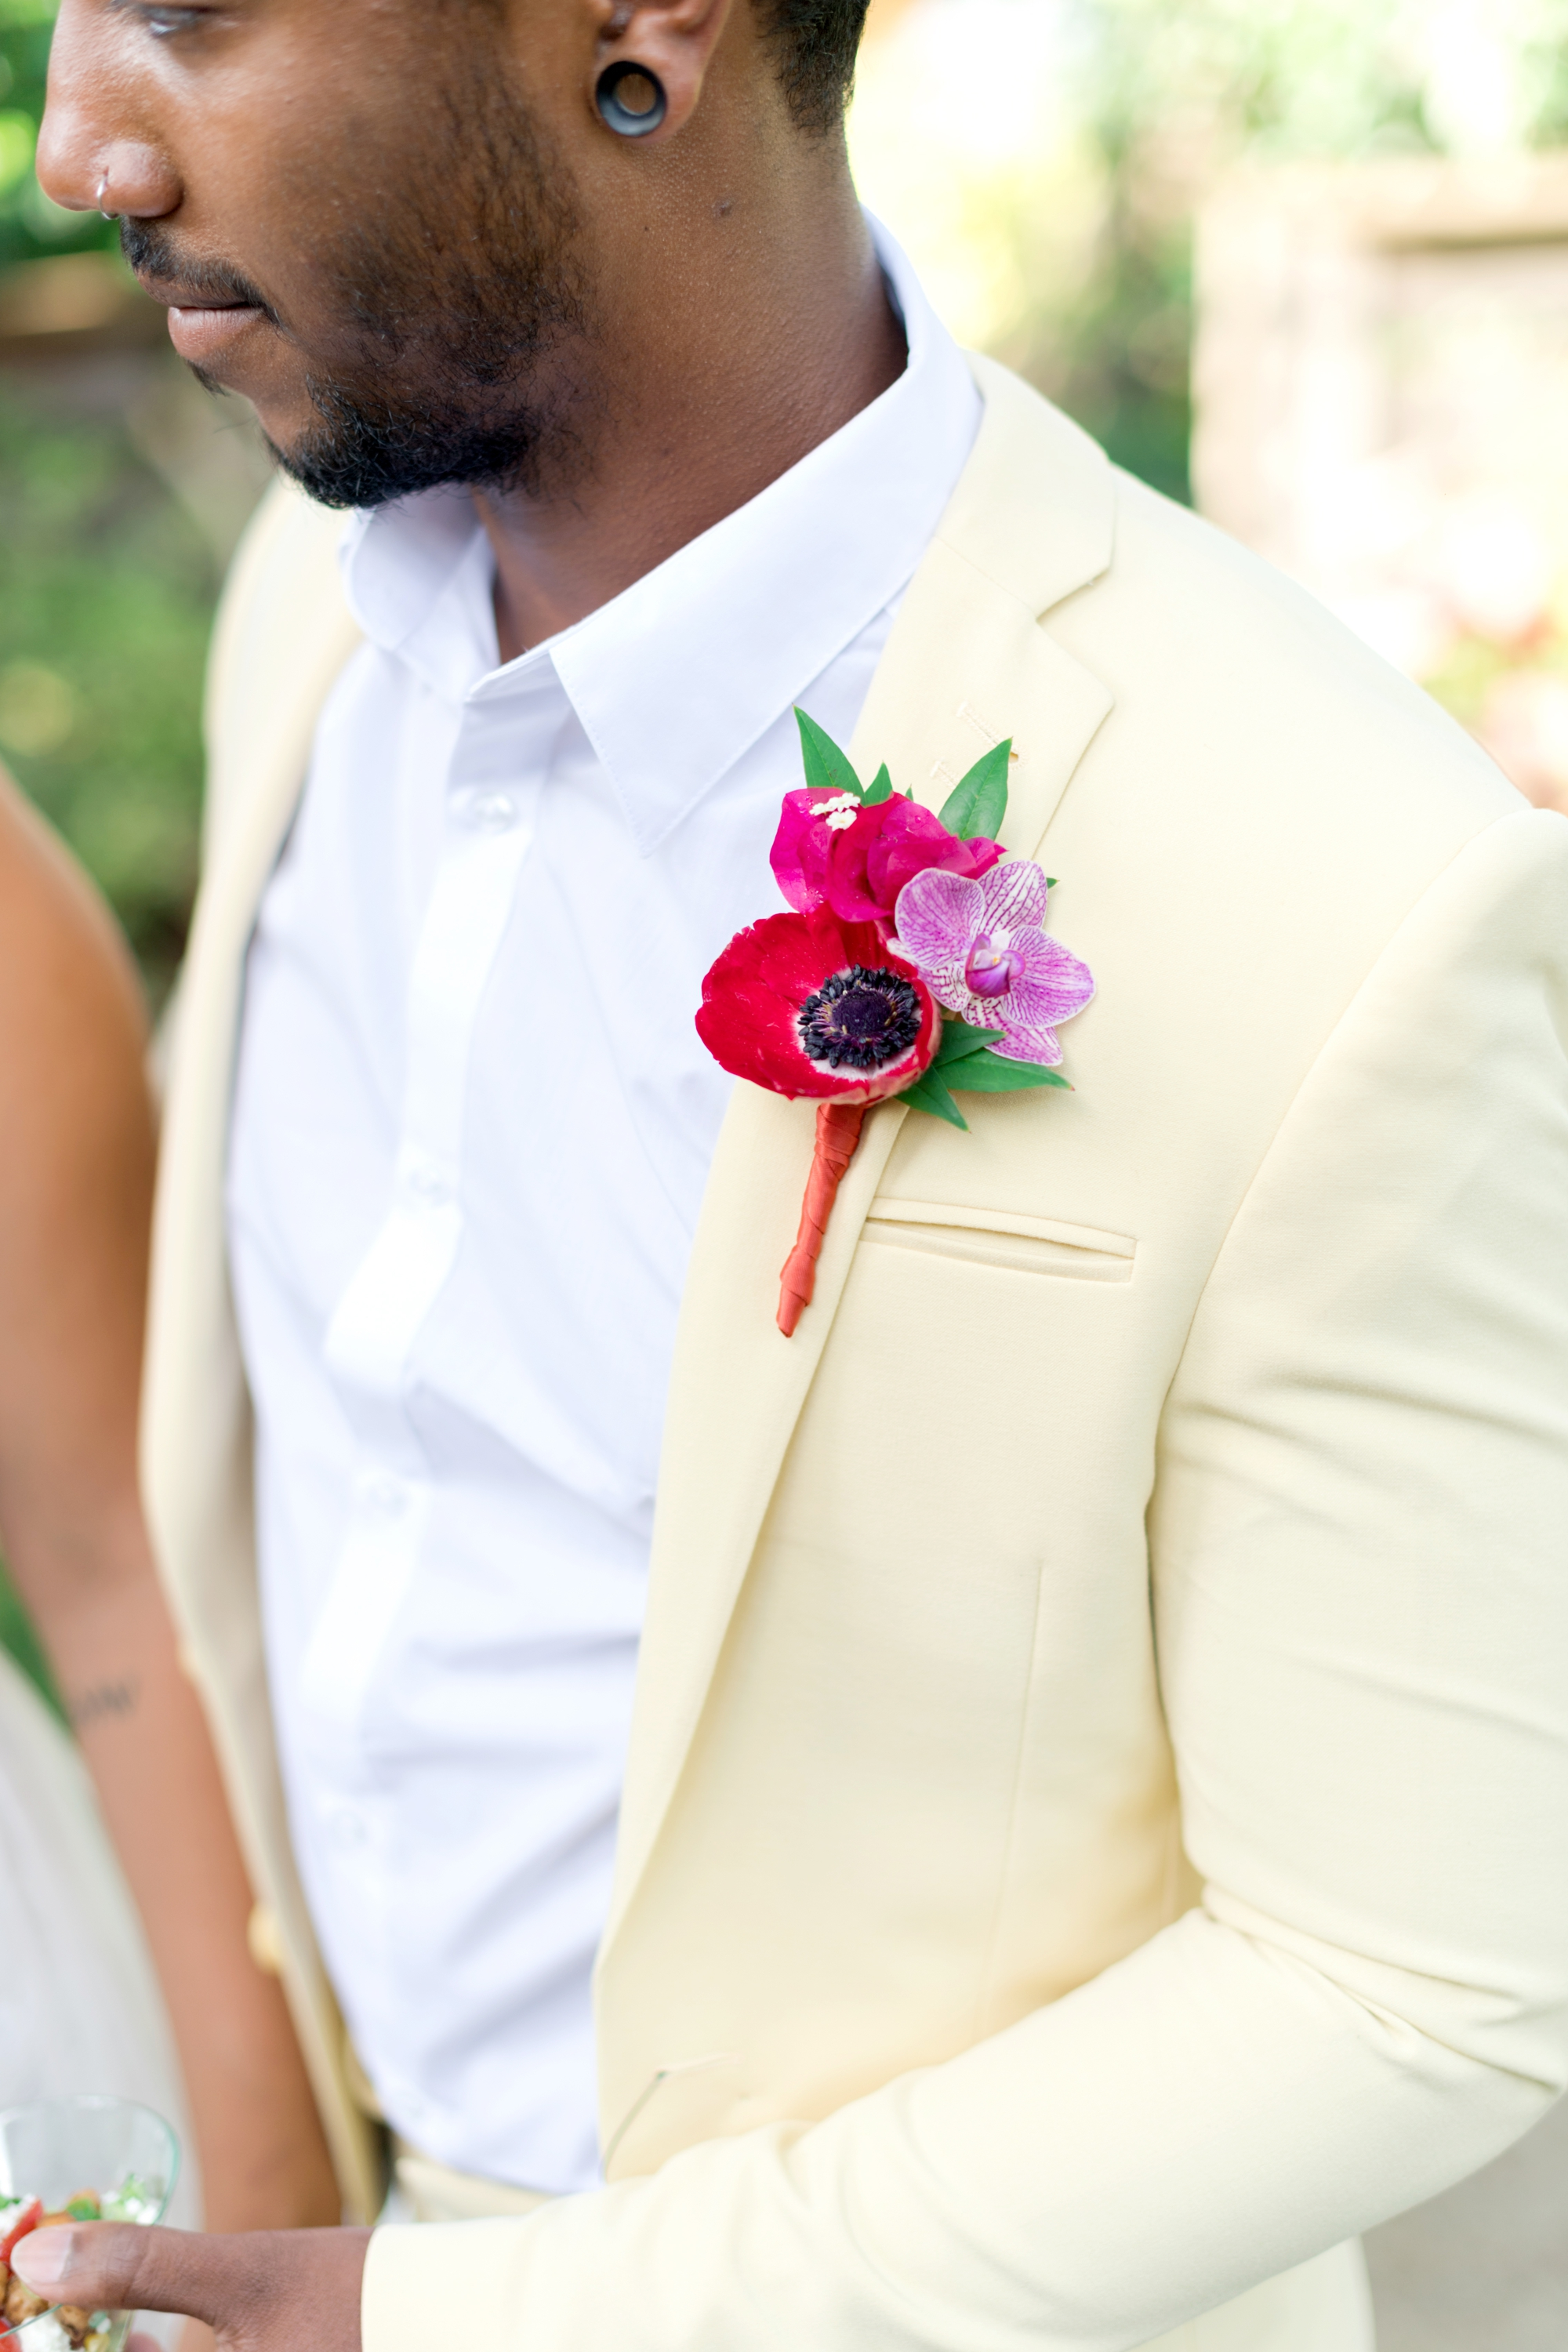 alternative groomsman attire - yellow suit